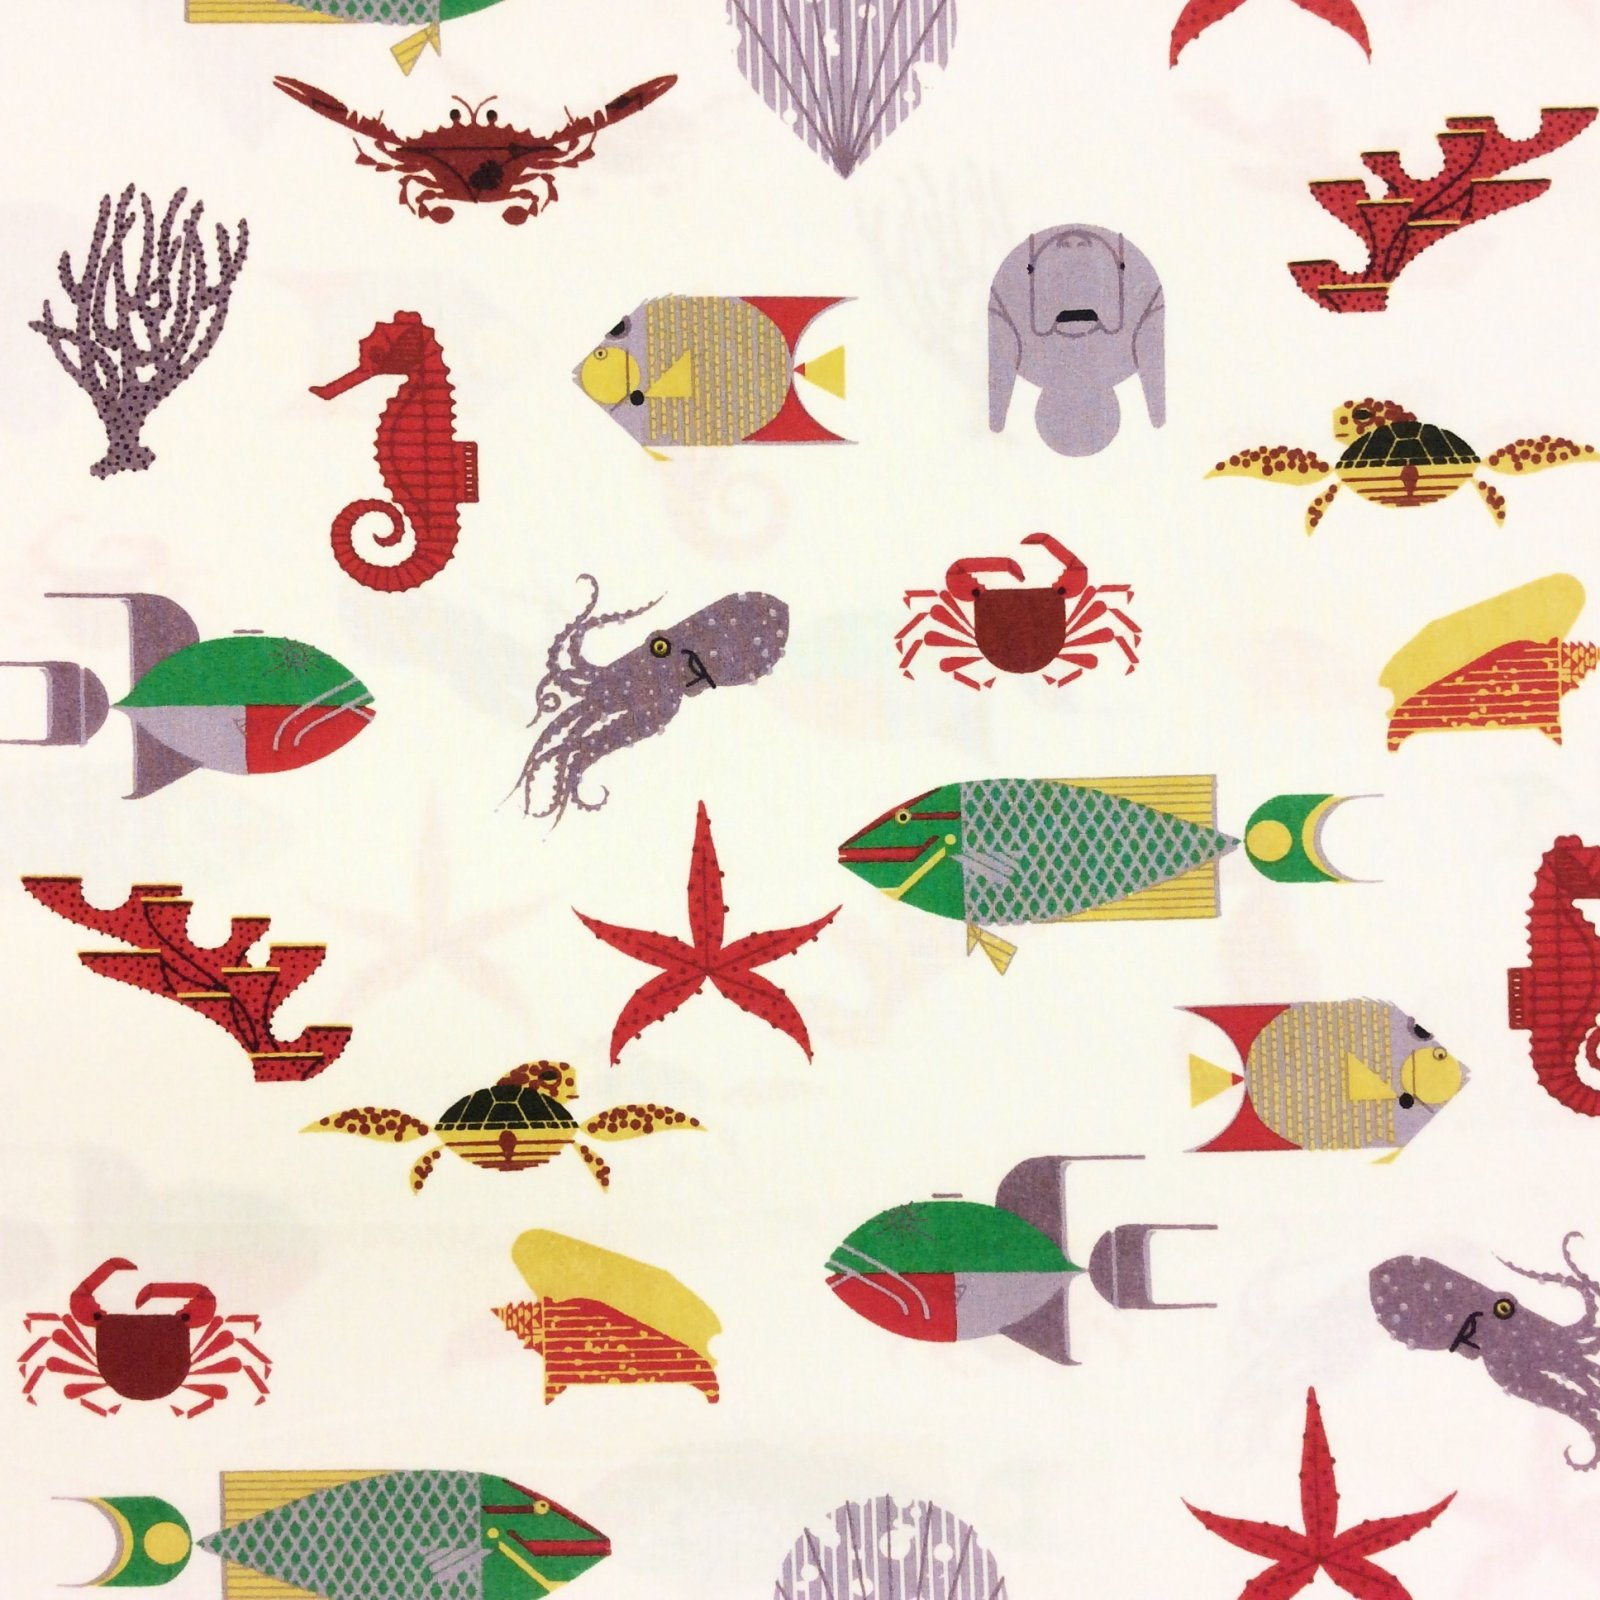 Charley Harper Sea Life Seahorse Fish Coral Turtle Squid Crab Manatee Organic Cotton Fabric CHB45